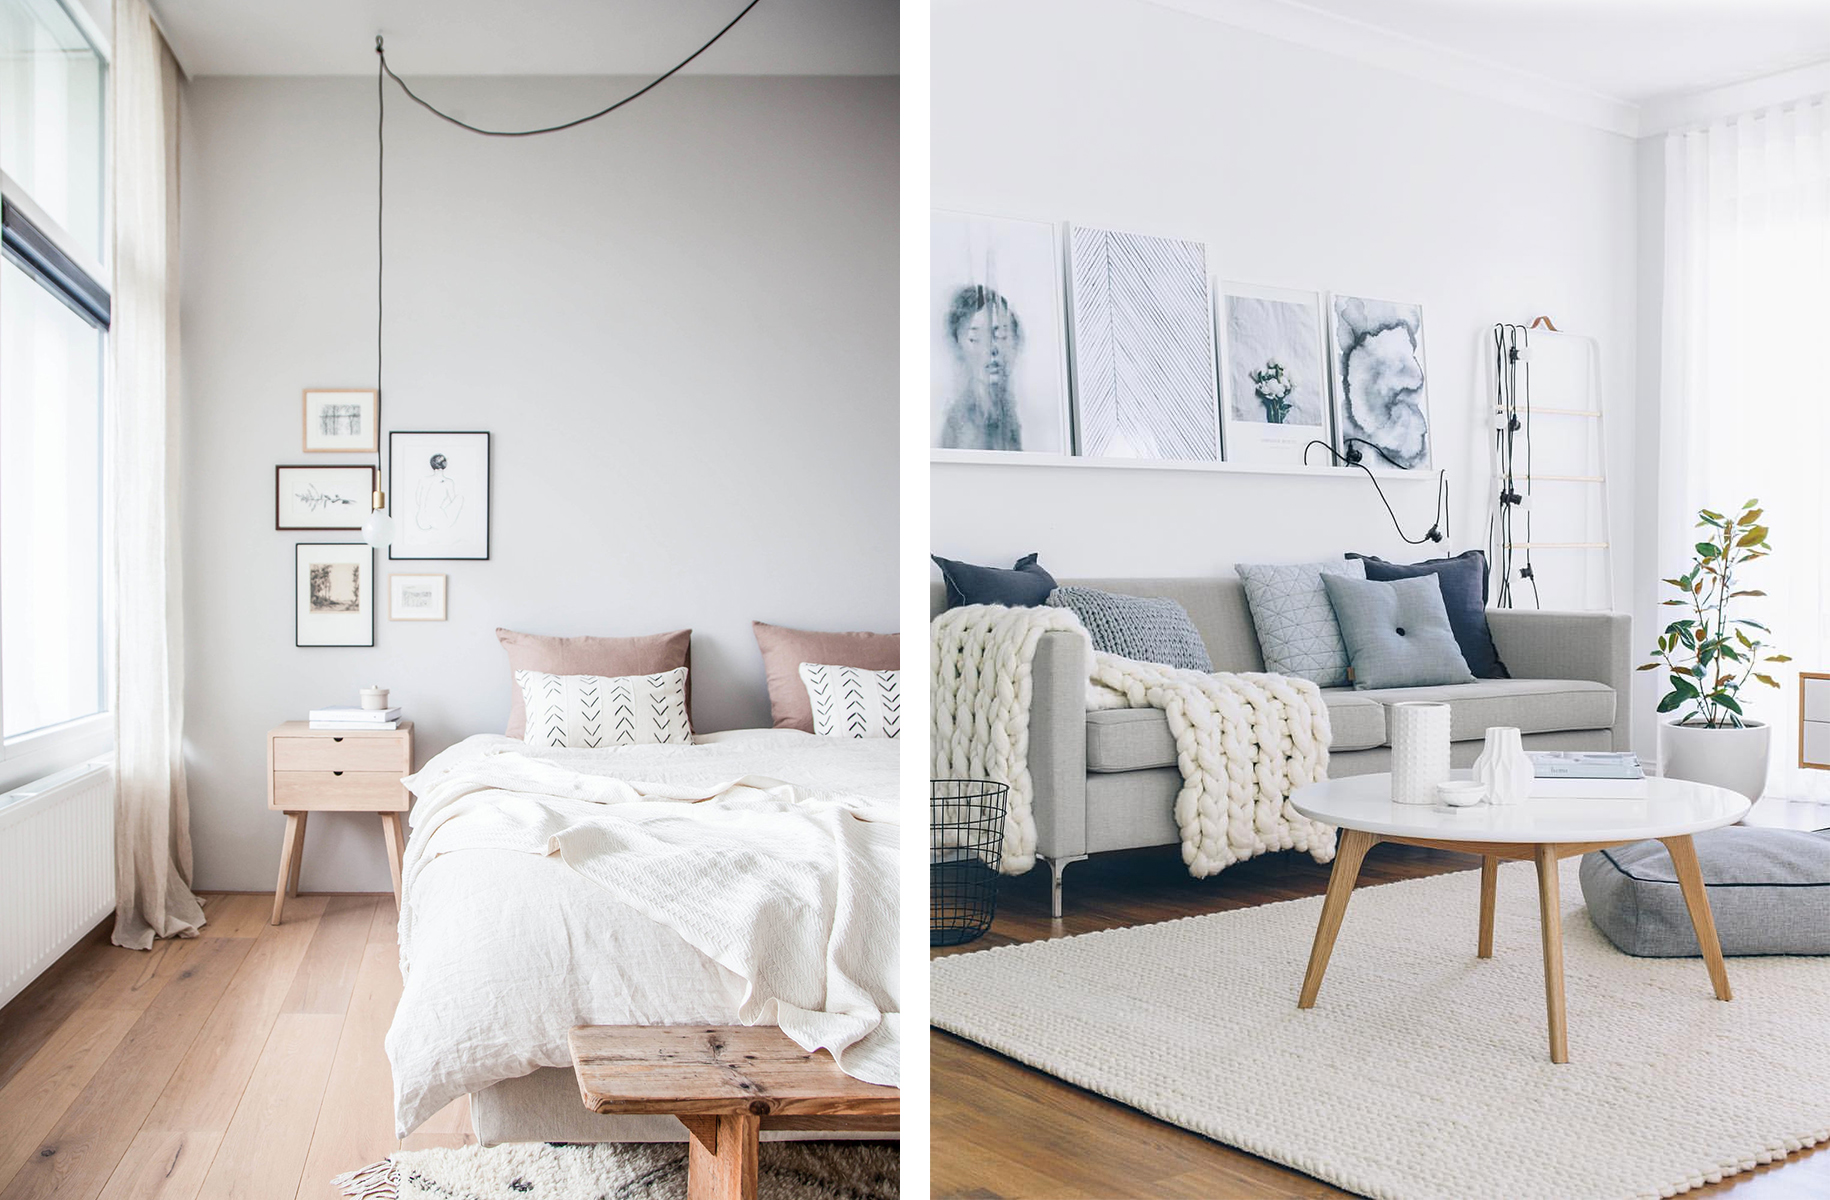 Scandinavian interiors with mix-and-match textiles - Top 10 tips for adding Scandinavian style to your home | Happy Grey Lucky